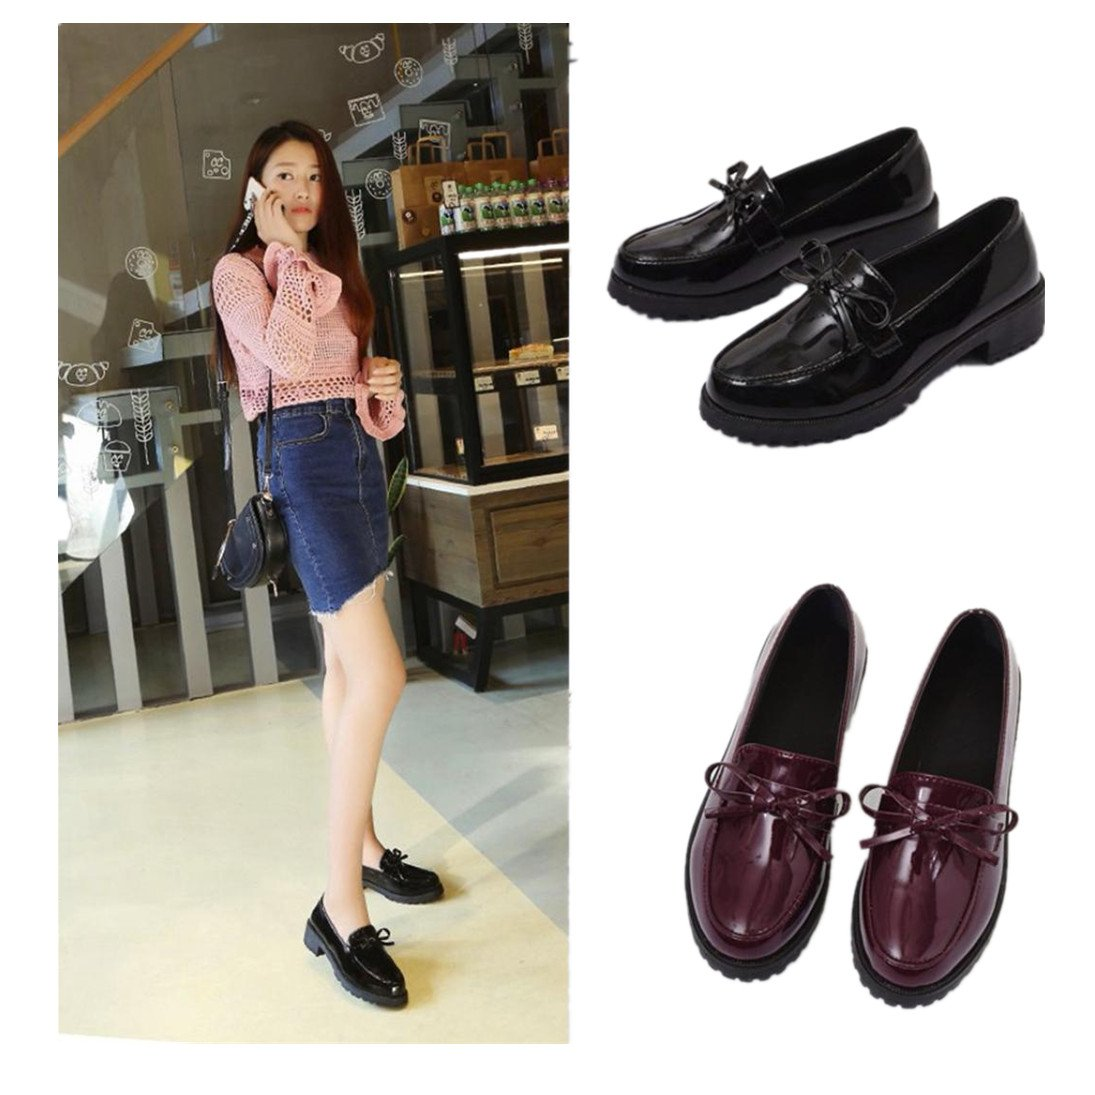 a316c38947494 Fheaven Women's Casual Leather Loafers Shoes Driving Moccasins Flats Shoes  Bowknot Low Platform Square Heel Ankle Shoes Brown